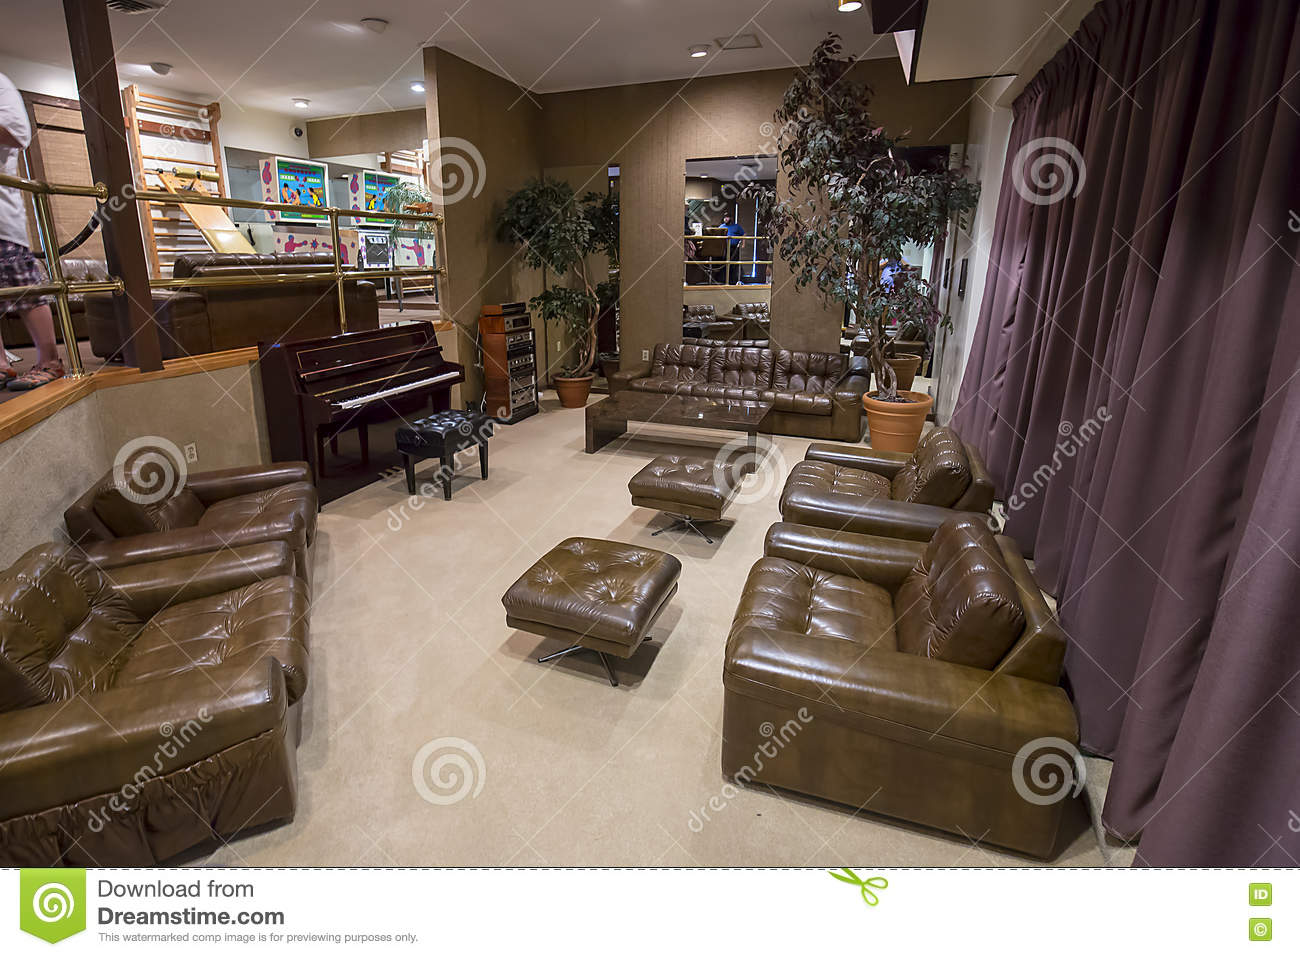 Graceland racquetball building lounge editorial stock for Build a racquetball court